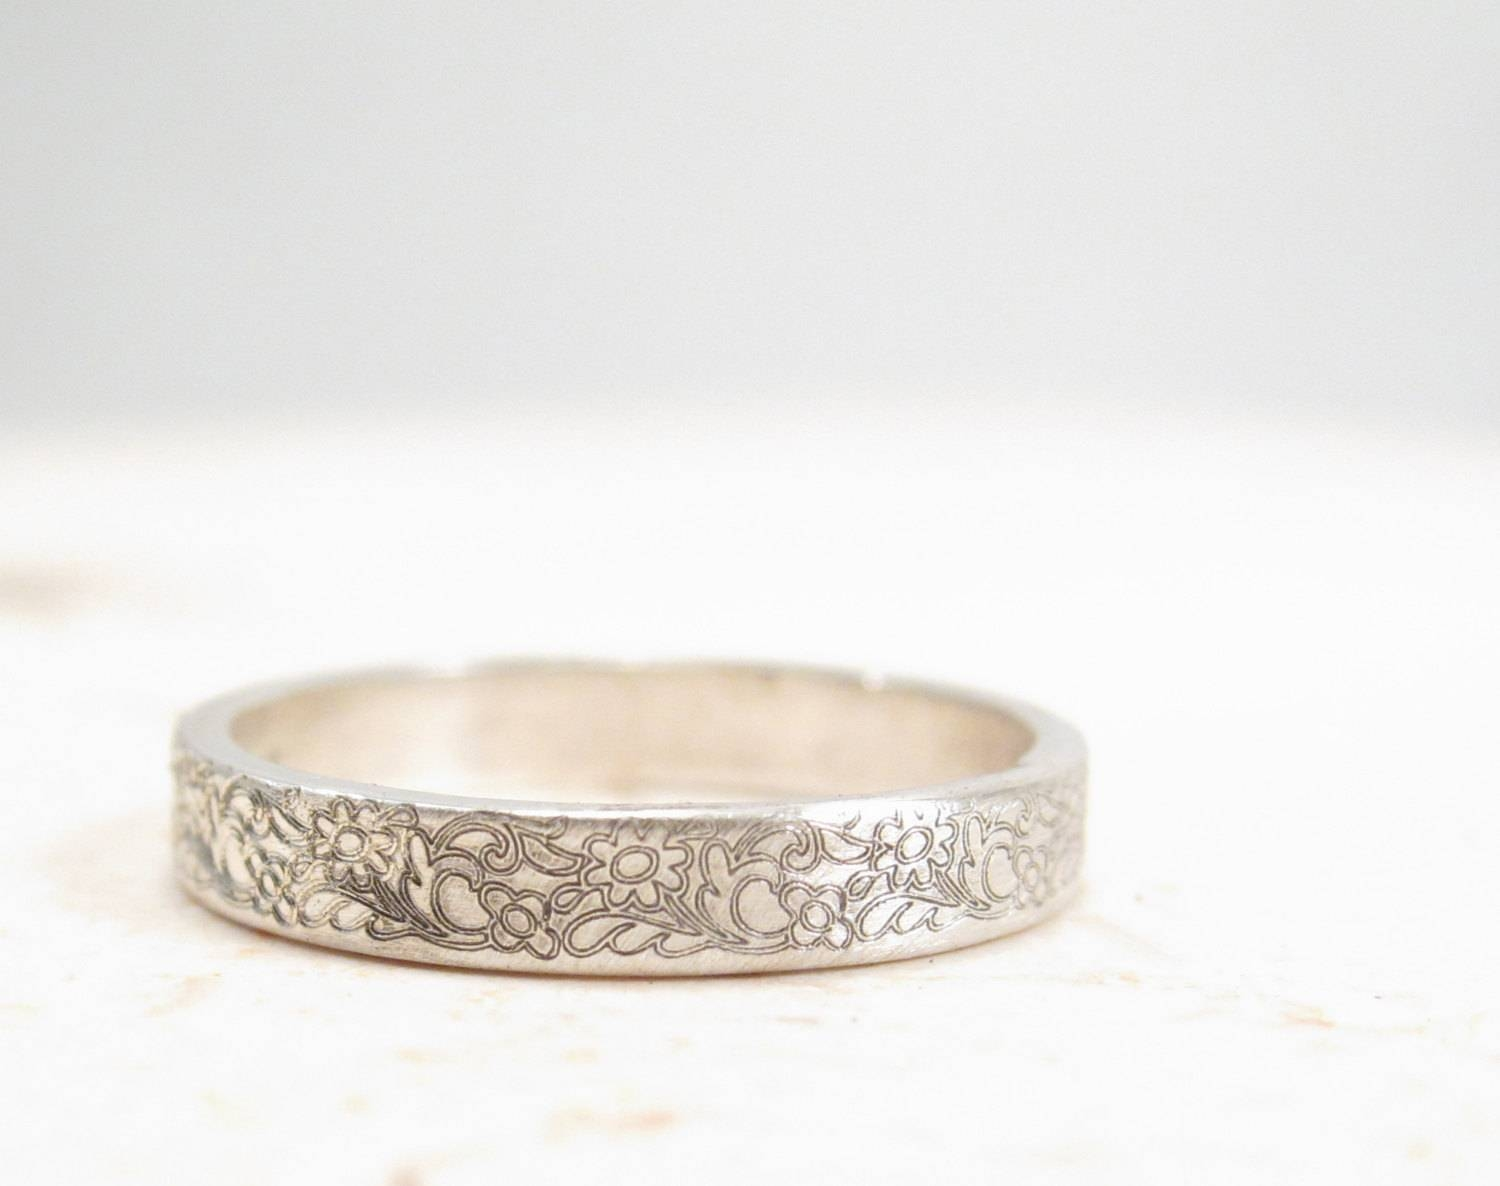 Silver Flower Ring Floral Wedding Band Vintage Inspired Regarding Simple Engagement Rings Without Diamond (View 11 of 15)